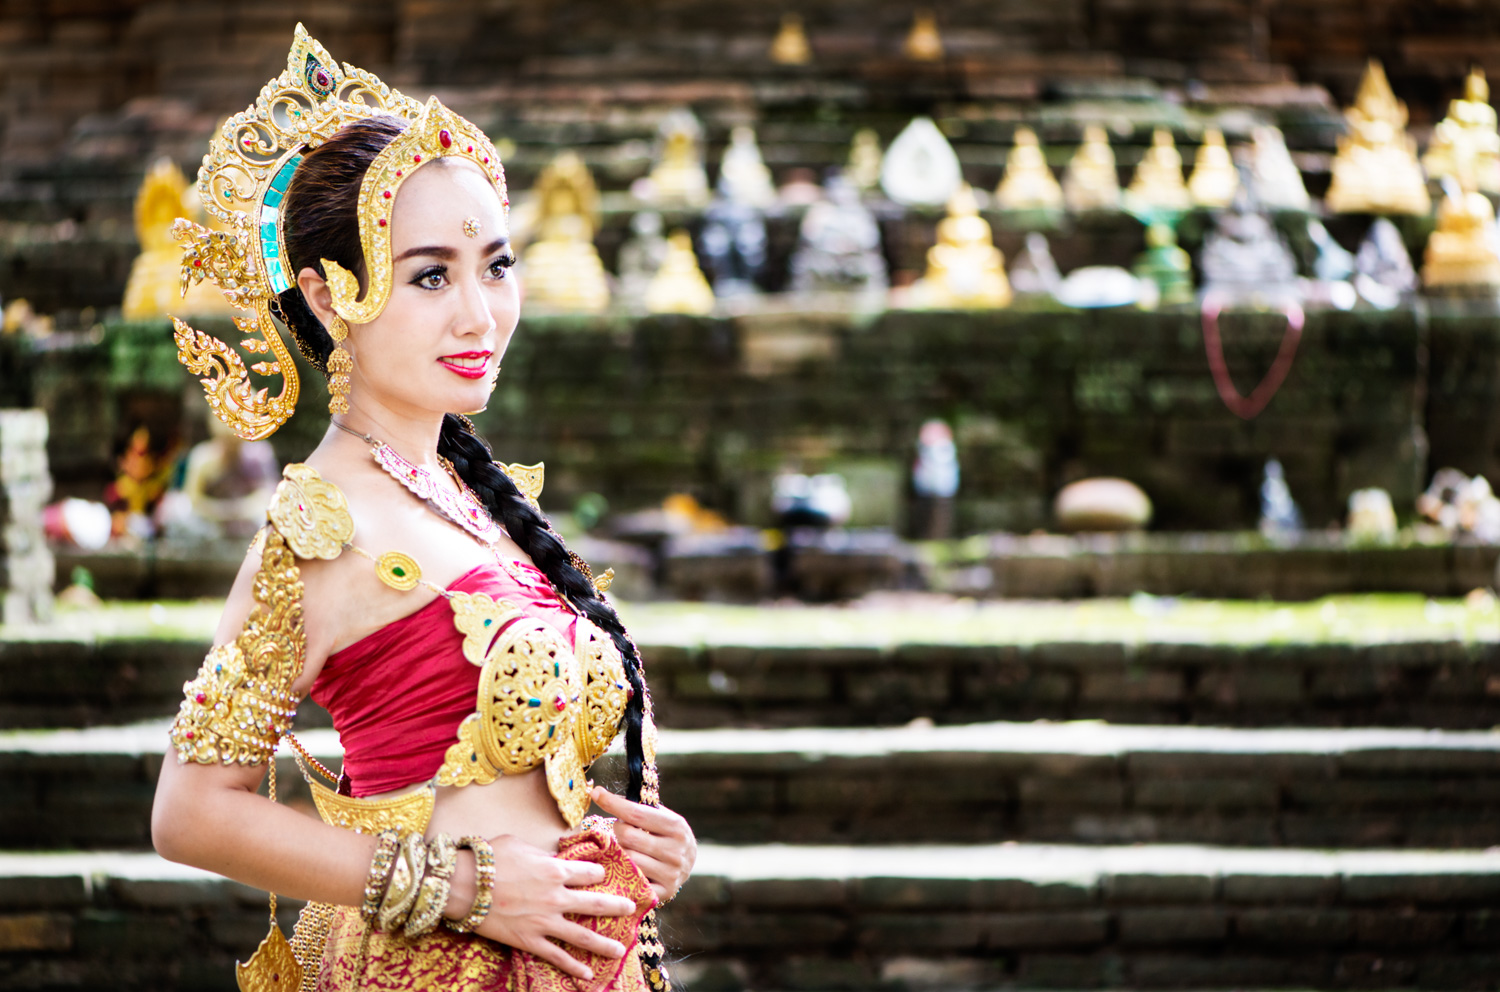 Young Thai woman in traditional costume - 4 Tips to Help You Overcome the Fear of Photographing People